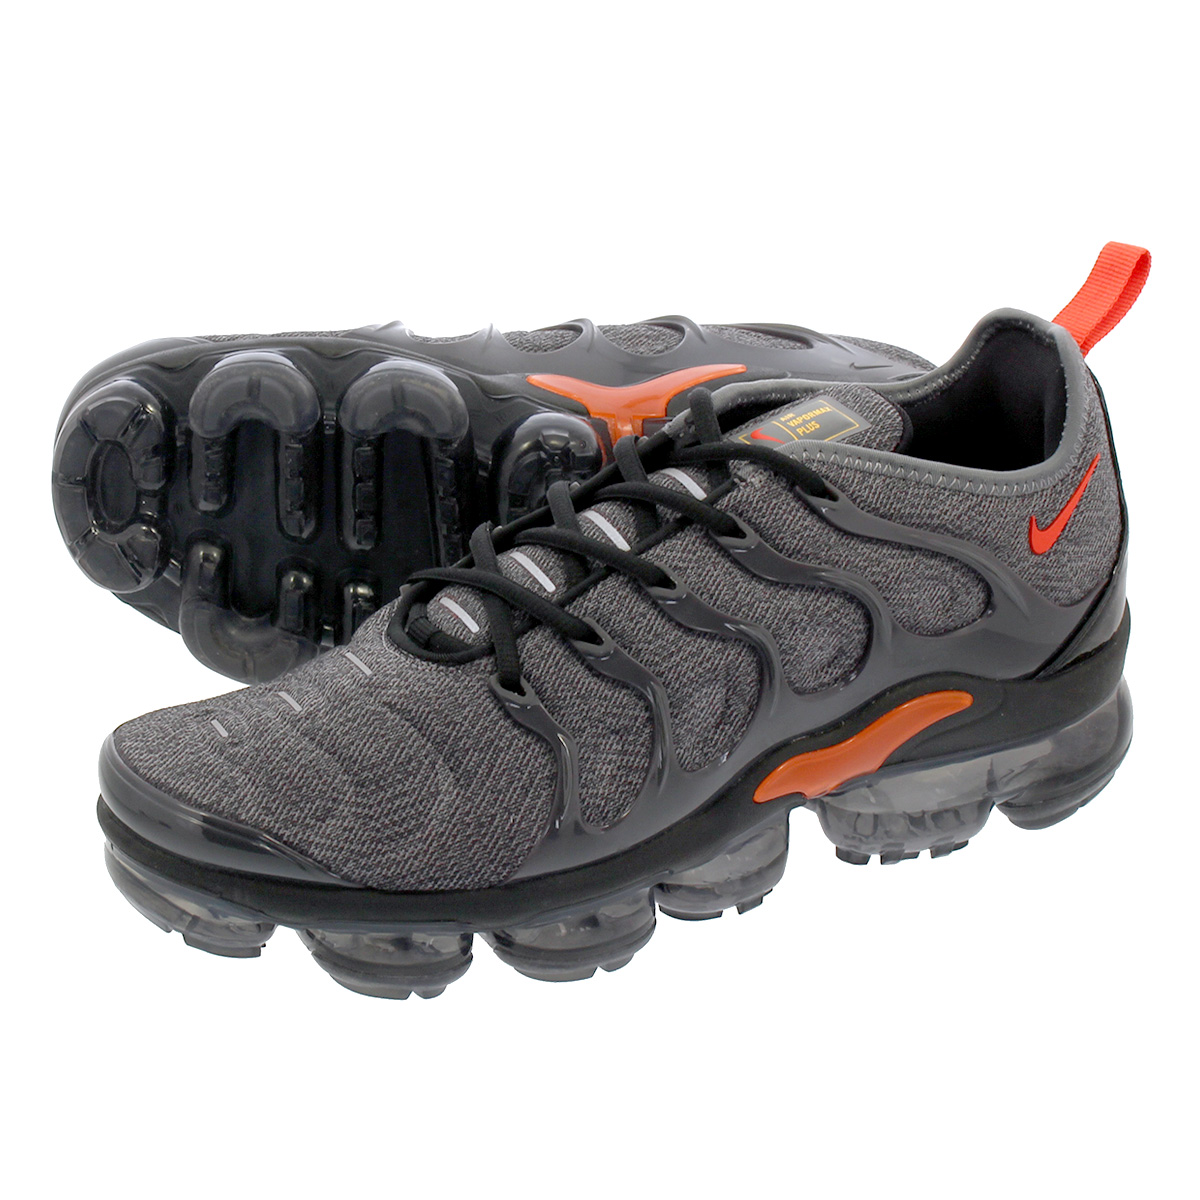 online store 8ffc9 c8ac8 NIKE AIR VAPORMAX PLUS Nike vapor max plus GREY/TEAM ORANGE 924,453-012